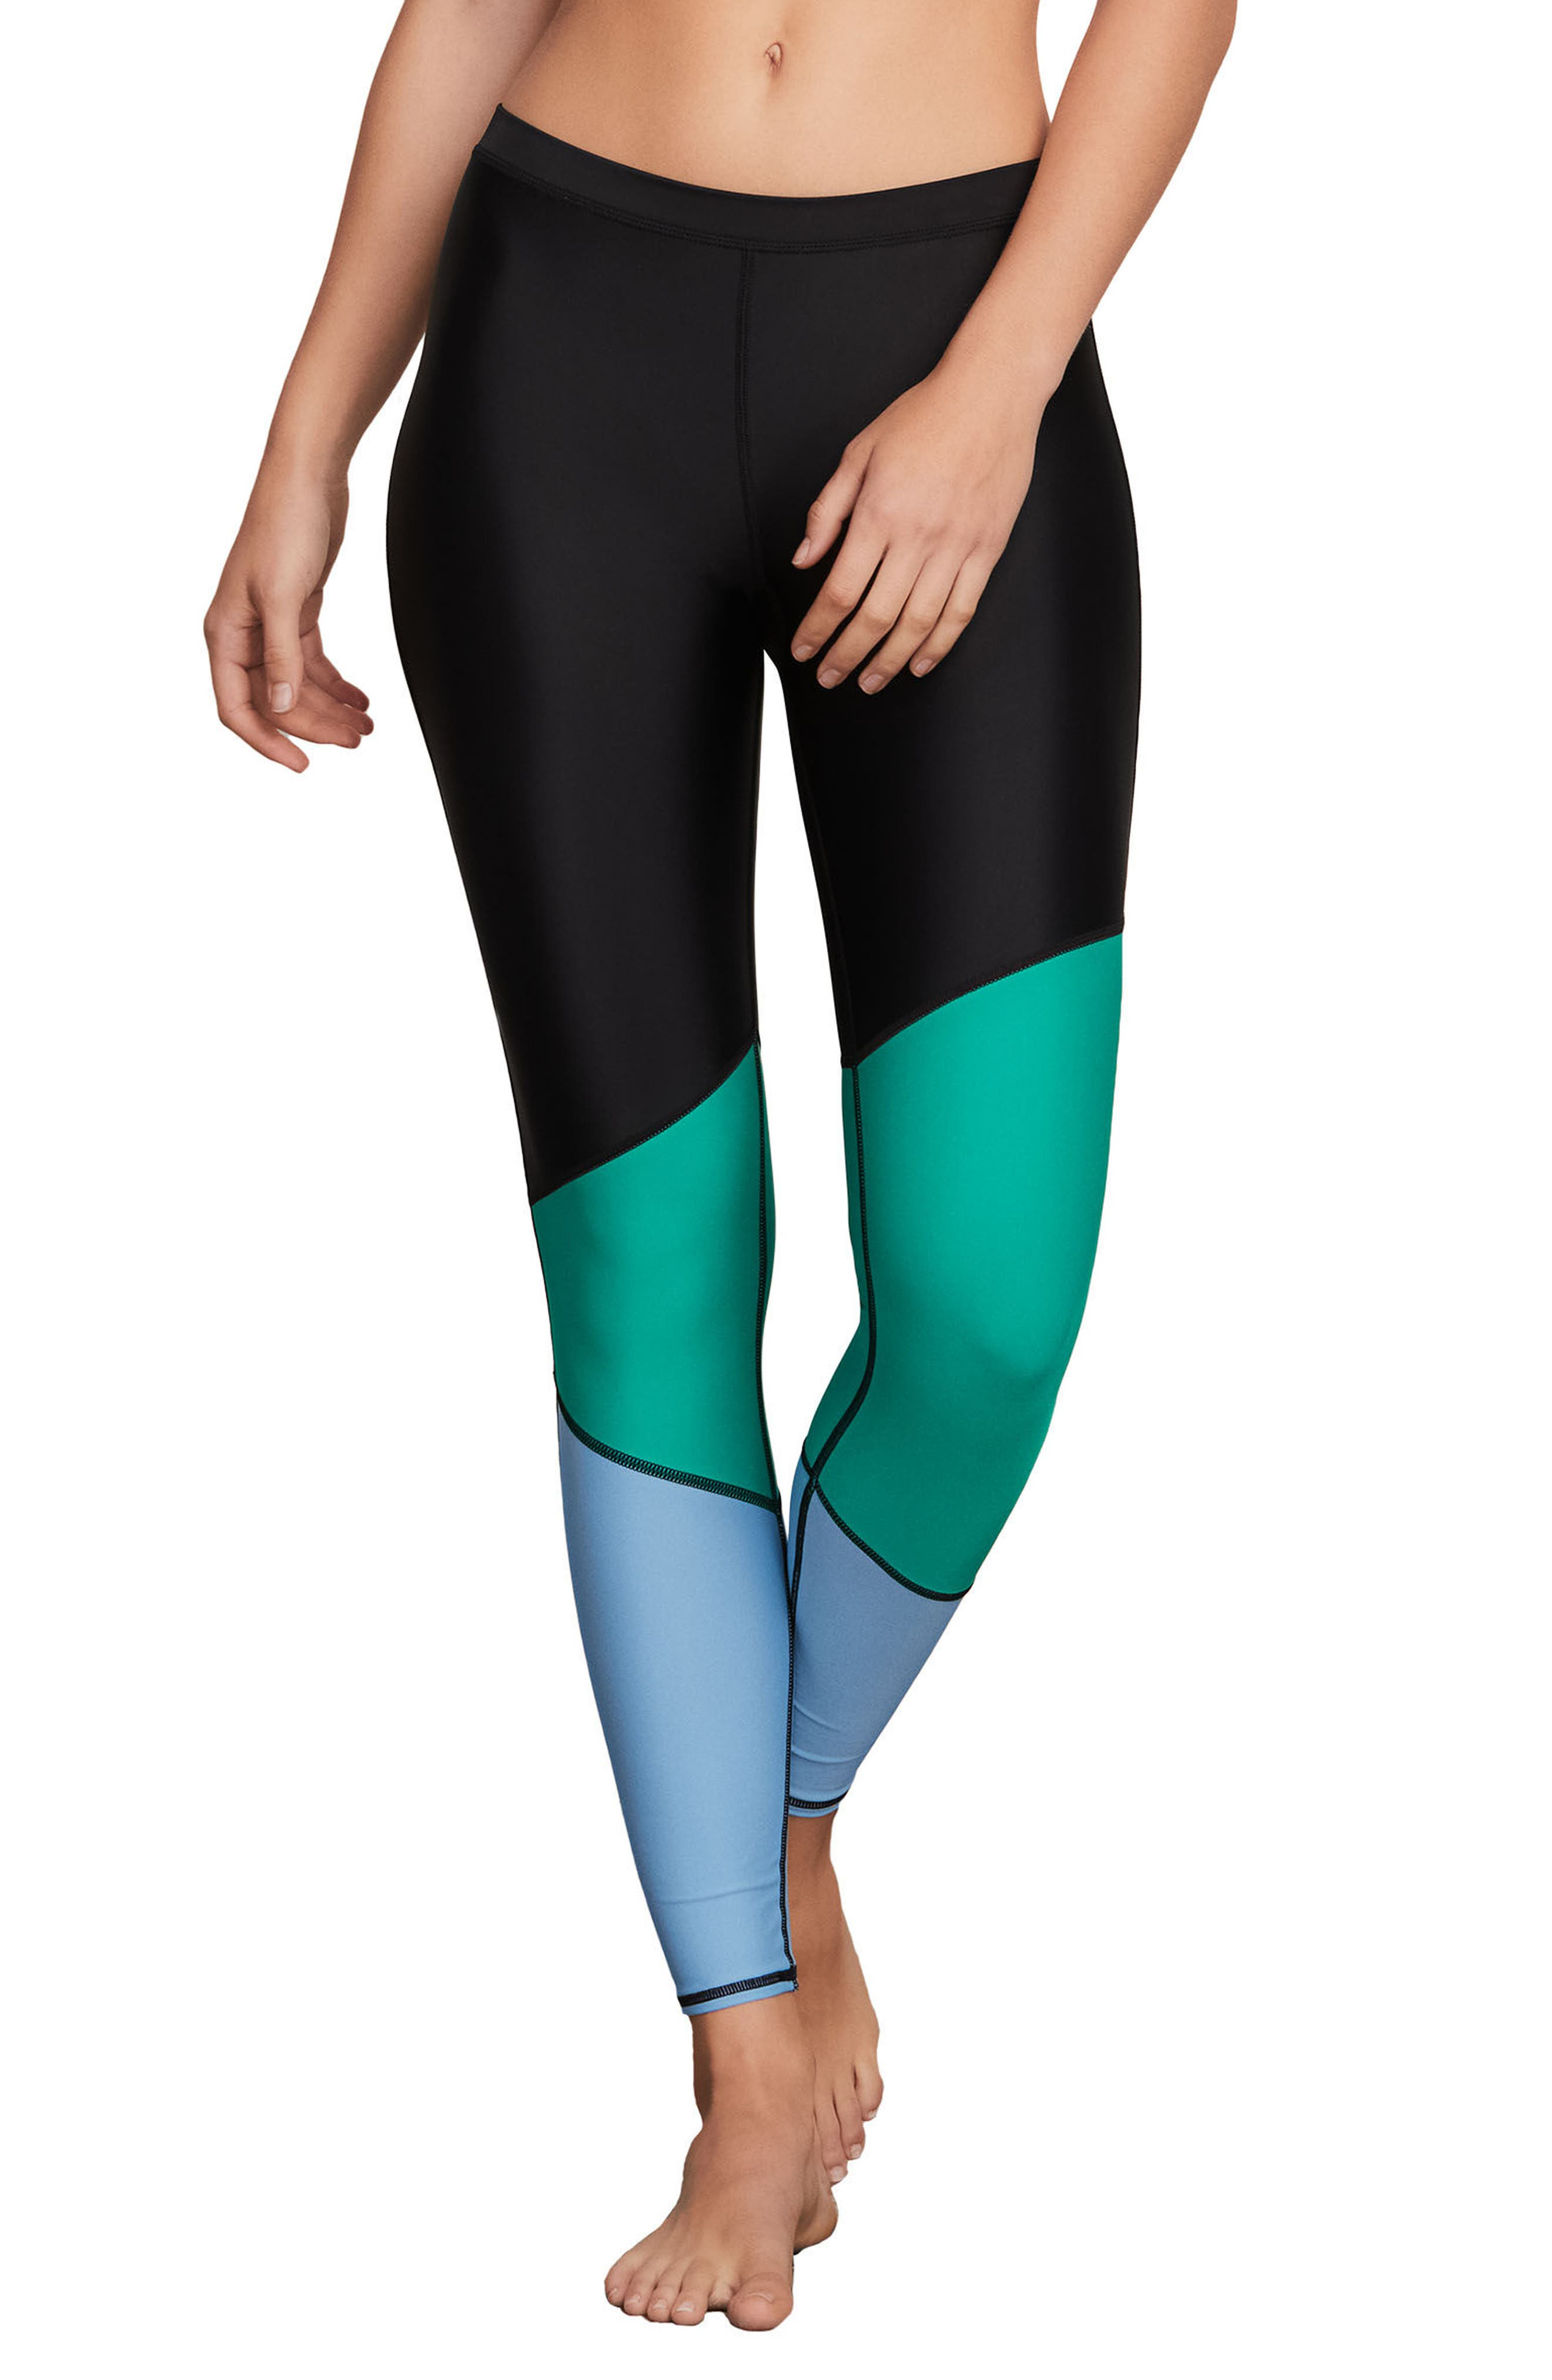 Simply Solid Leggings,                         Main,                         color, Green Spry